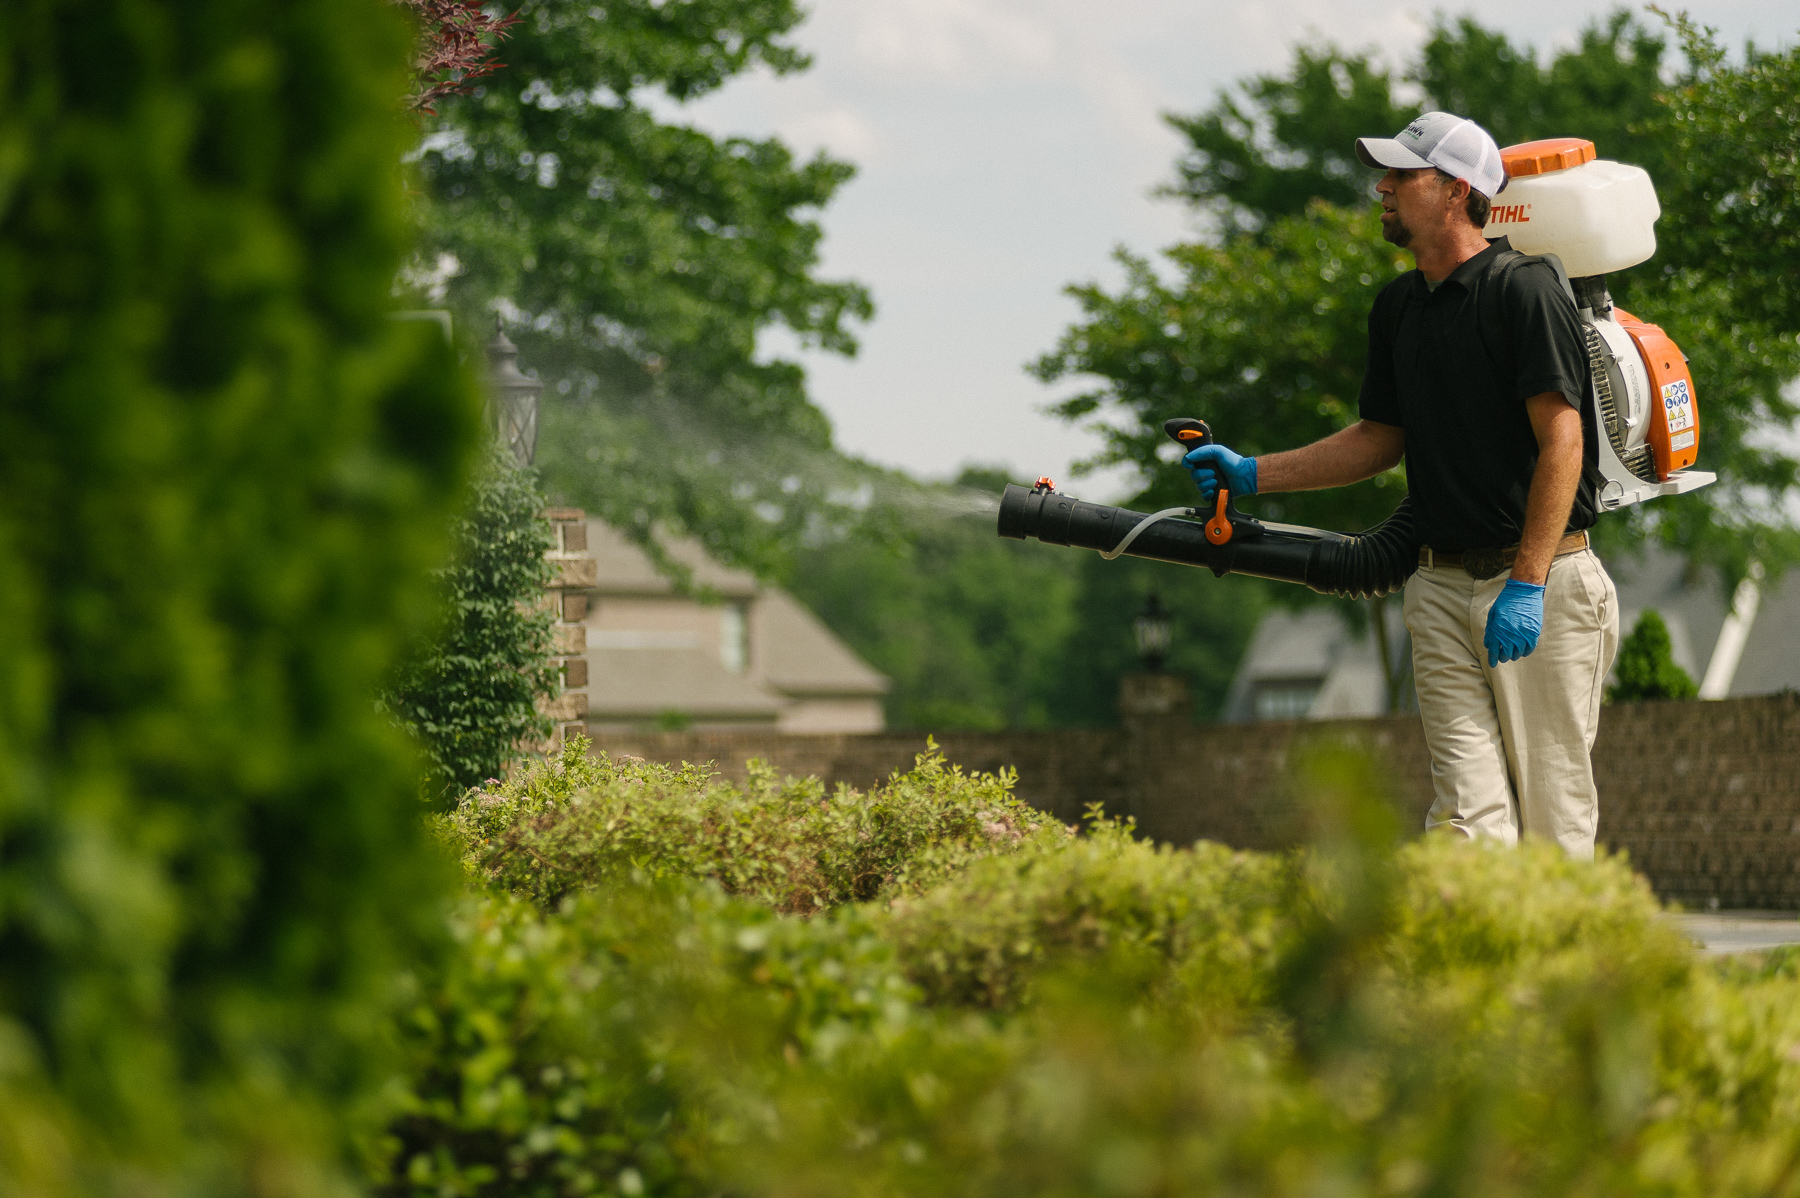 Master Lawn technician spraying mosquito control